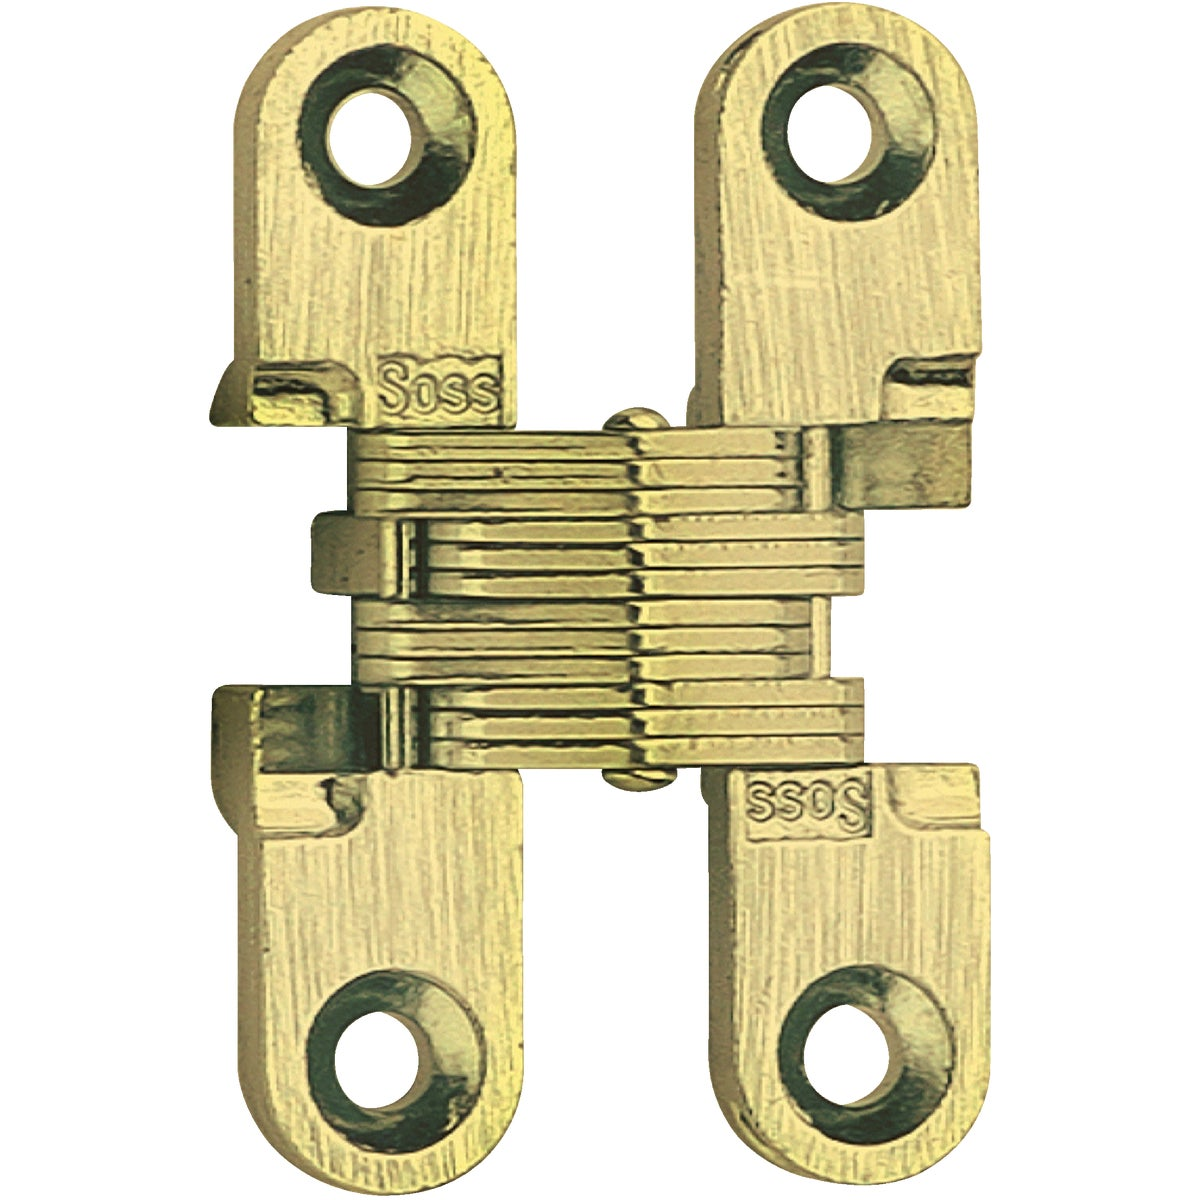 3/8X1-11/16 INVIS HINGE - 101CUS4 by Universal Ind Prod